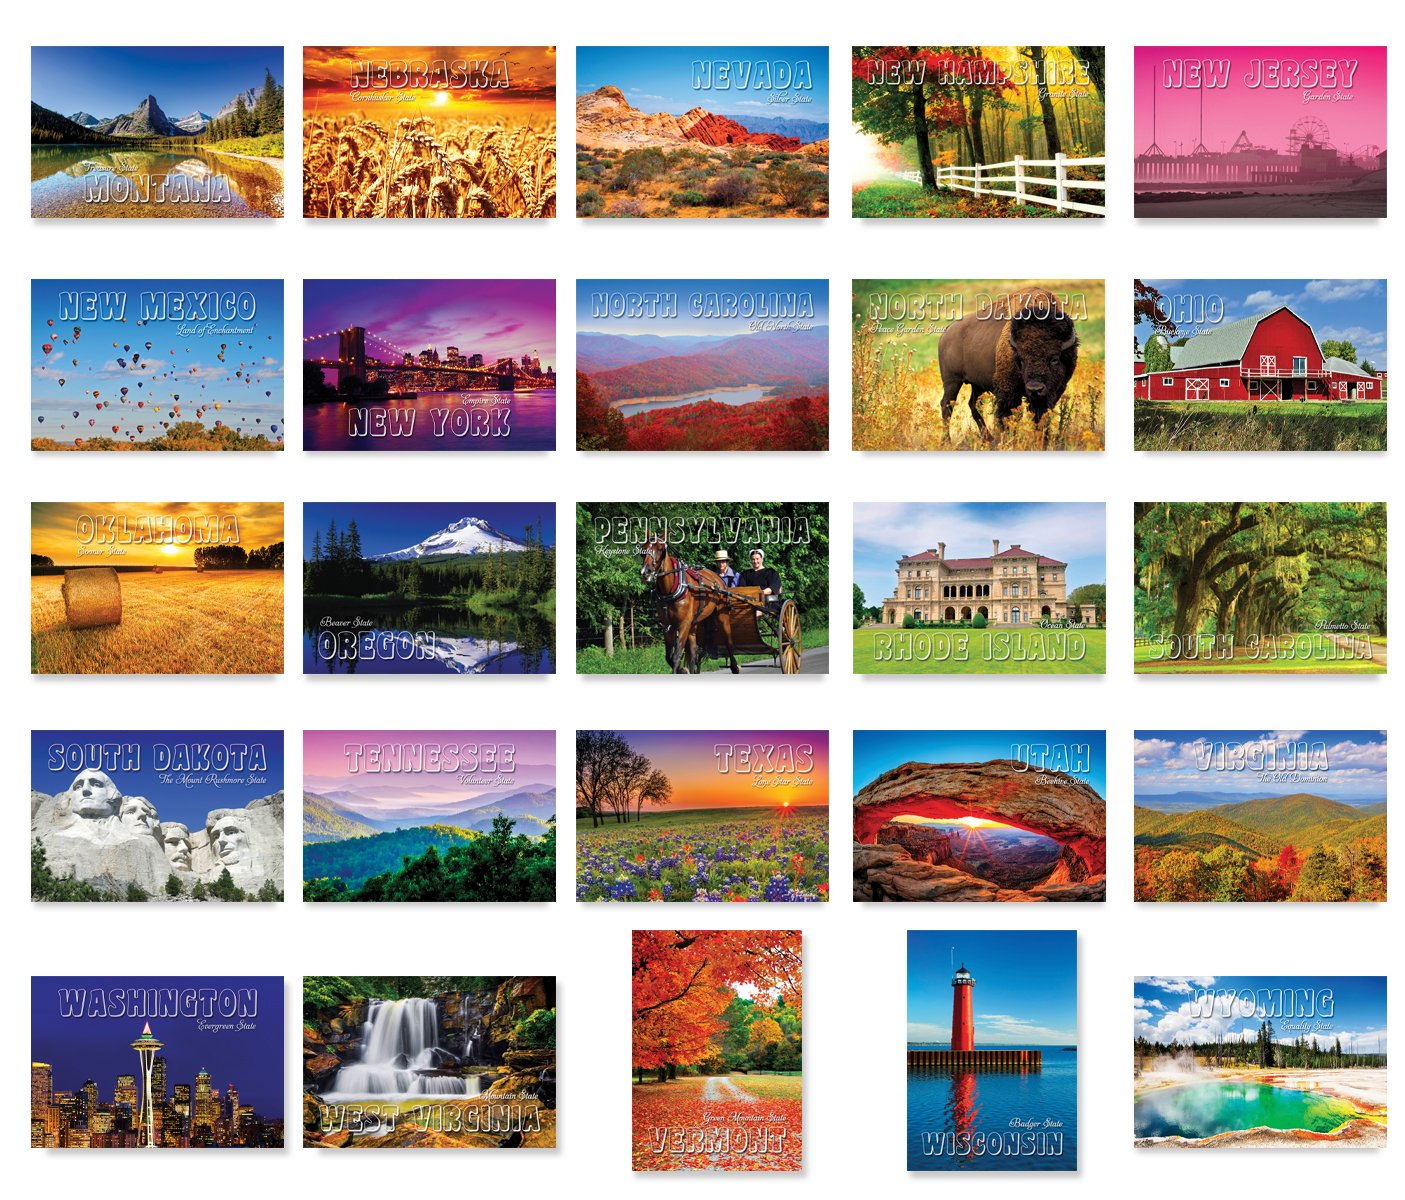 AMERICA THE BEAUTIFUL postcard set of 20 Made in USA. Post card variety pack depicting United States travel sites and American theme postcards